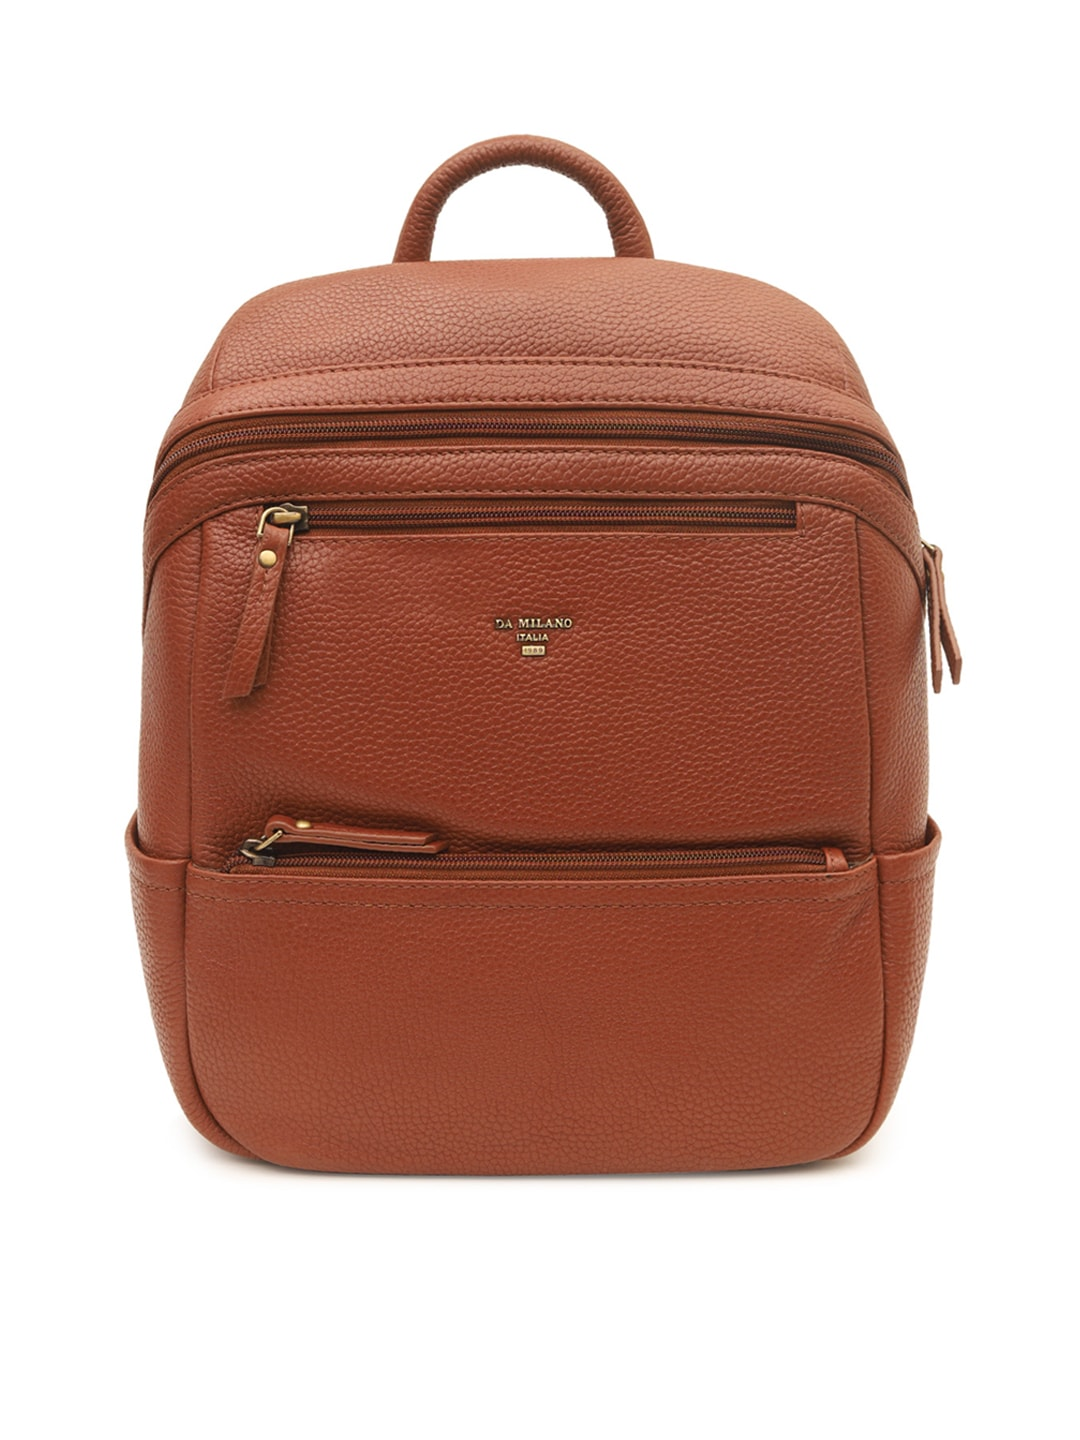 Laptop Bags Backpacks - Buy Laptop Bags Backpacks online in India de326a207d9ad